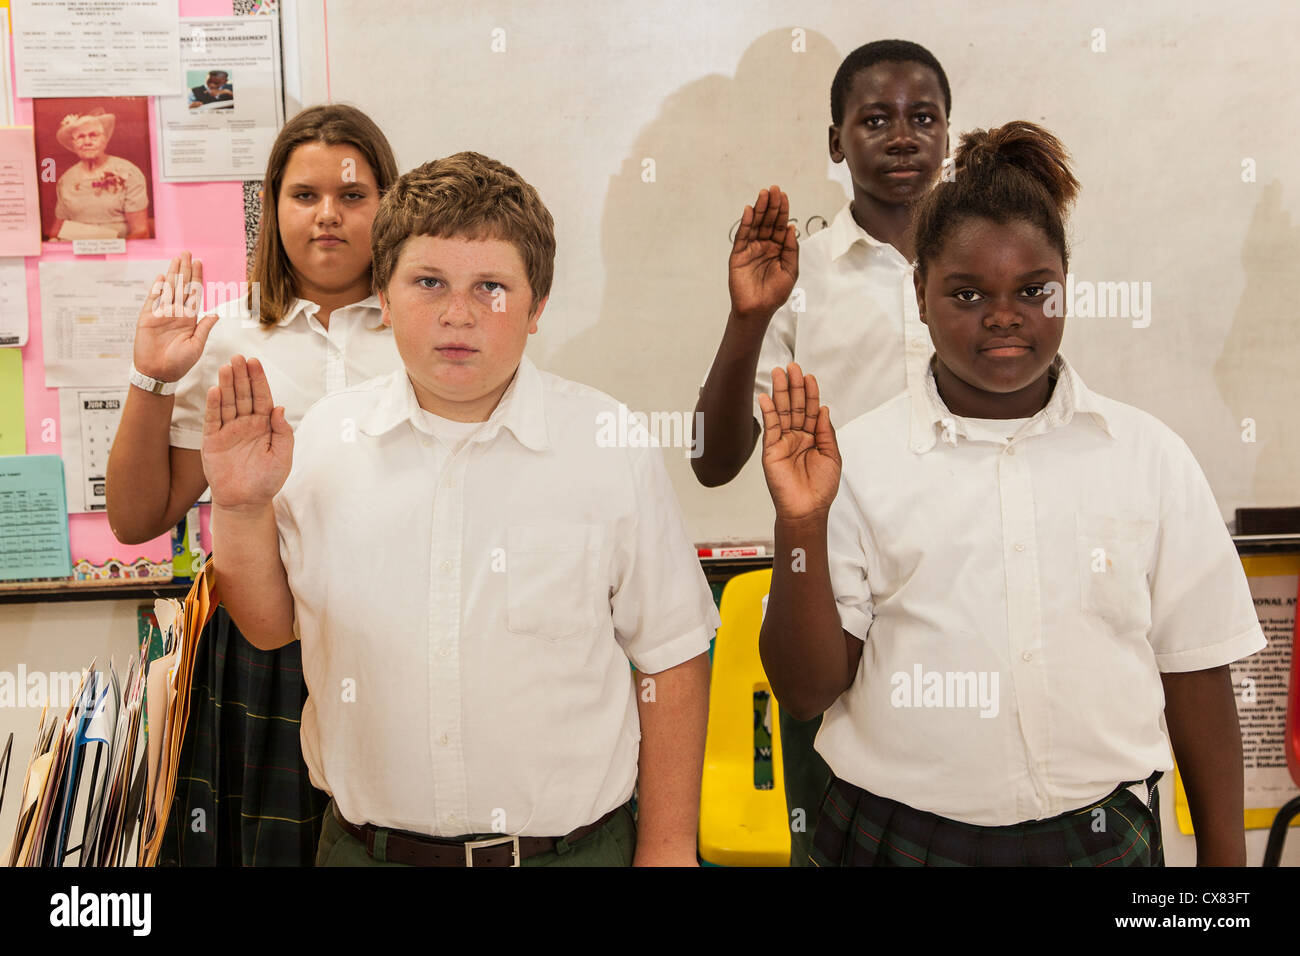 Bahamian school children practice the graduation oath in New Plymouth on Green Turtle Cay, Bahamas. - Stock Image